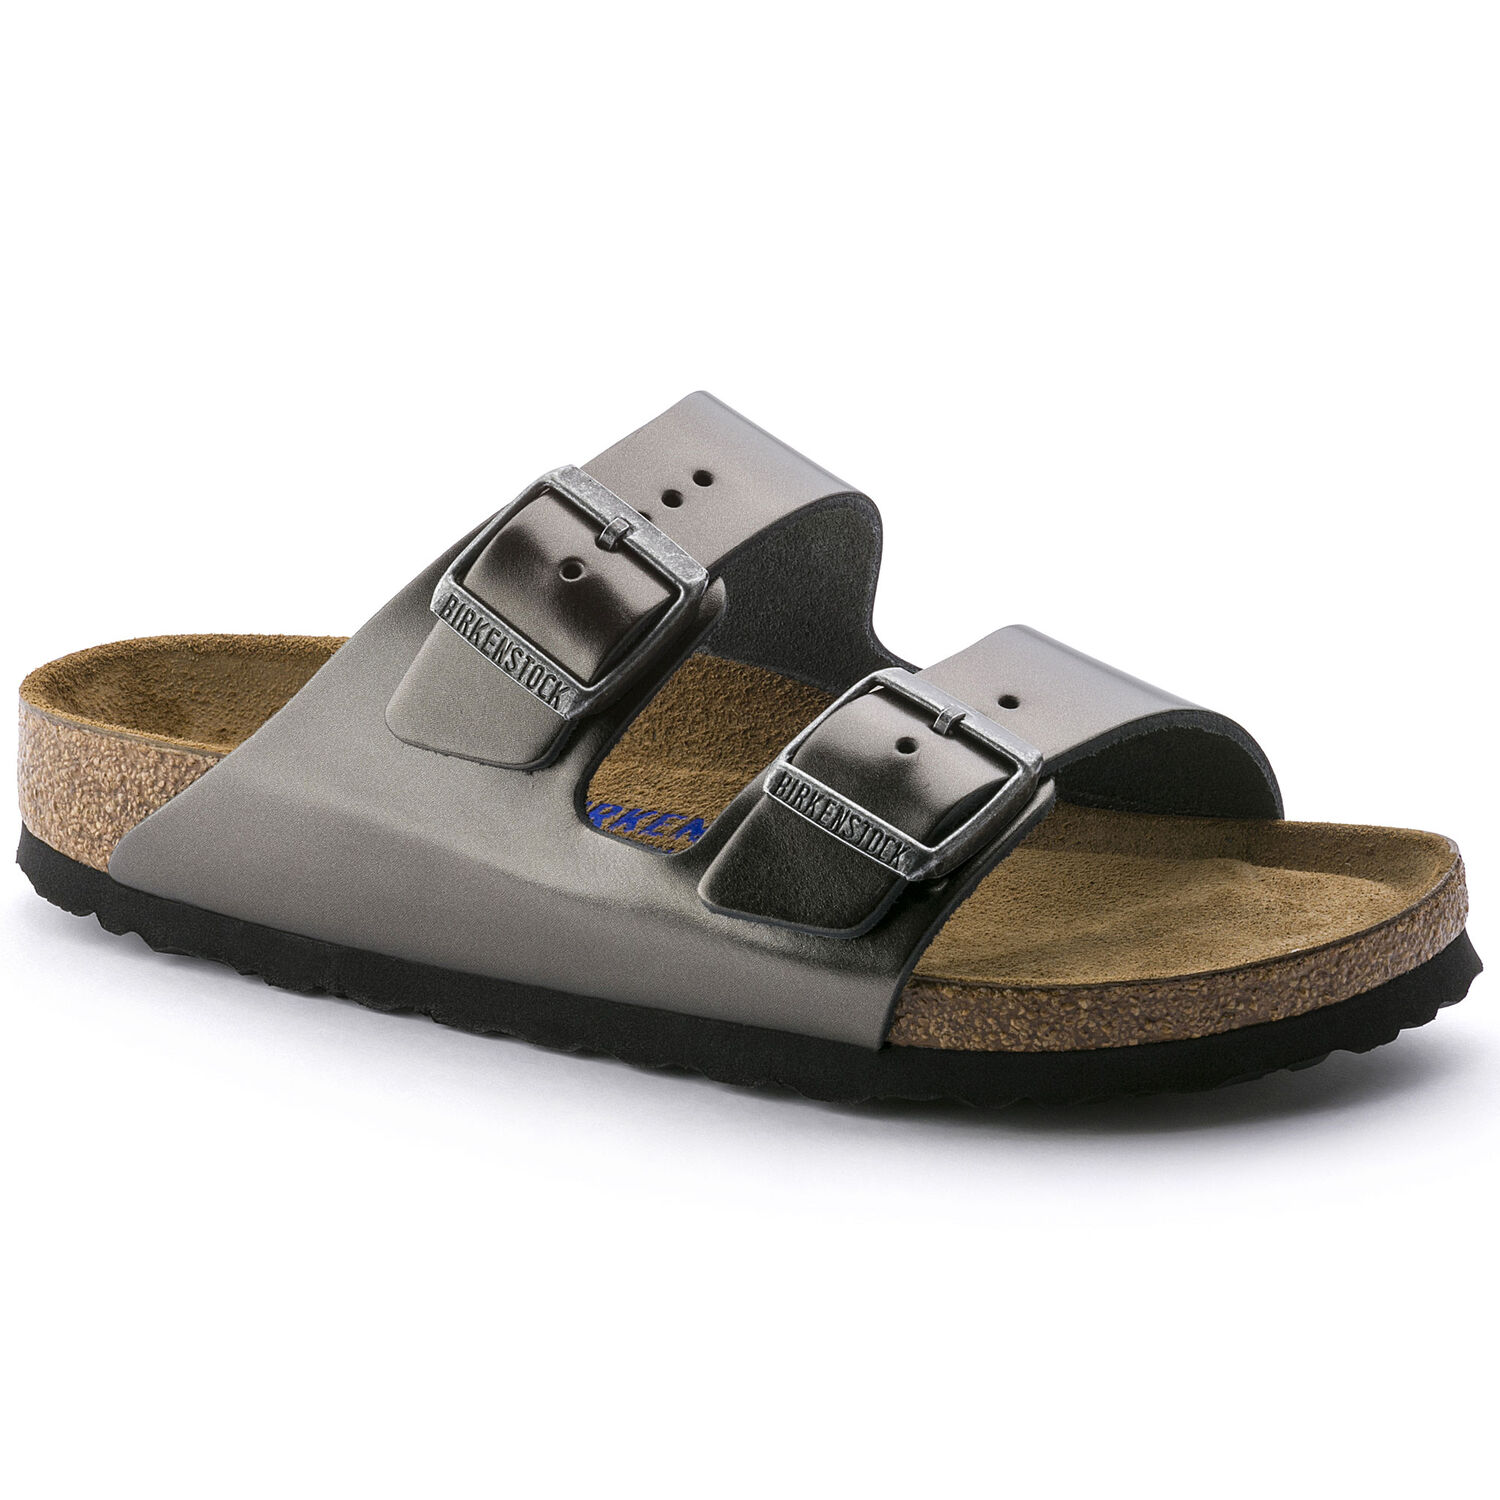 3ff770c0df Arizona Natural Leather Metallic Anthracite | BIRKENSTOCK